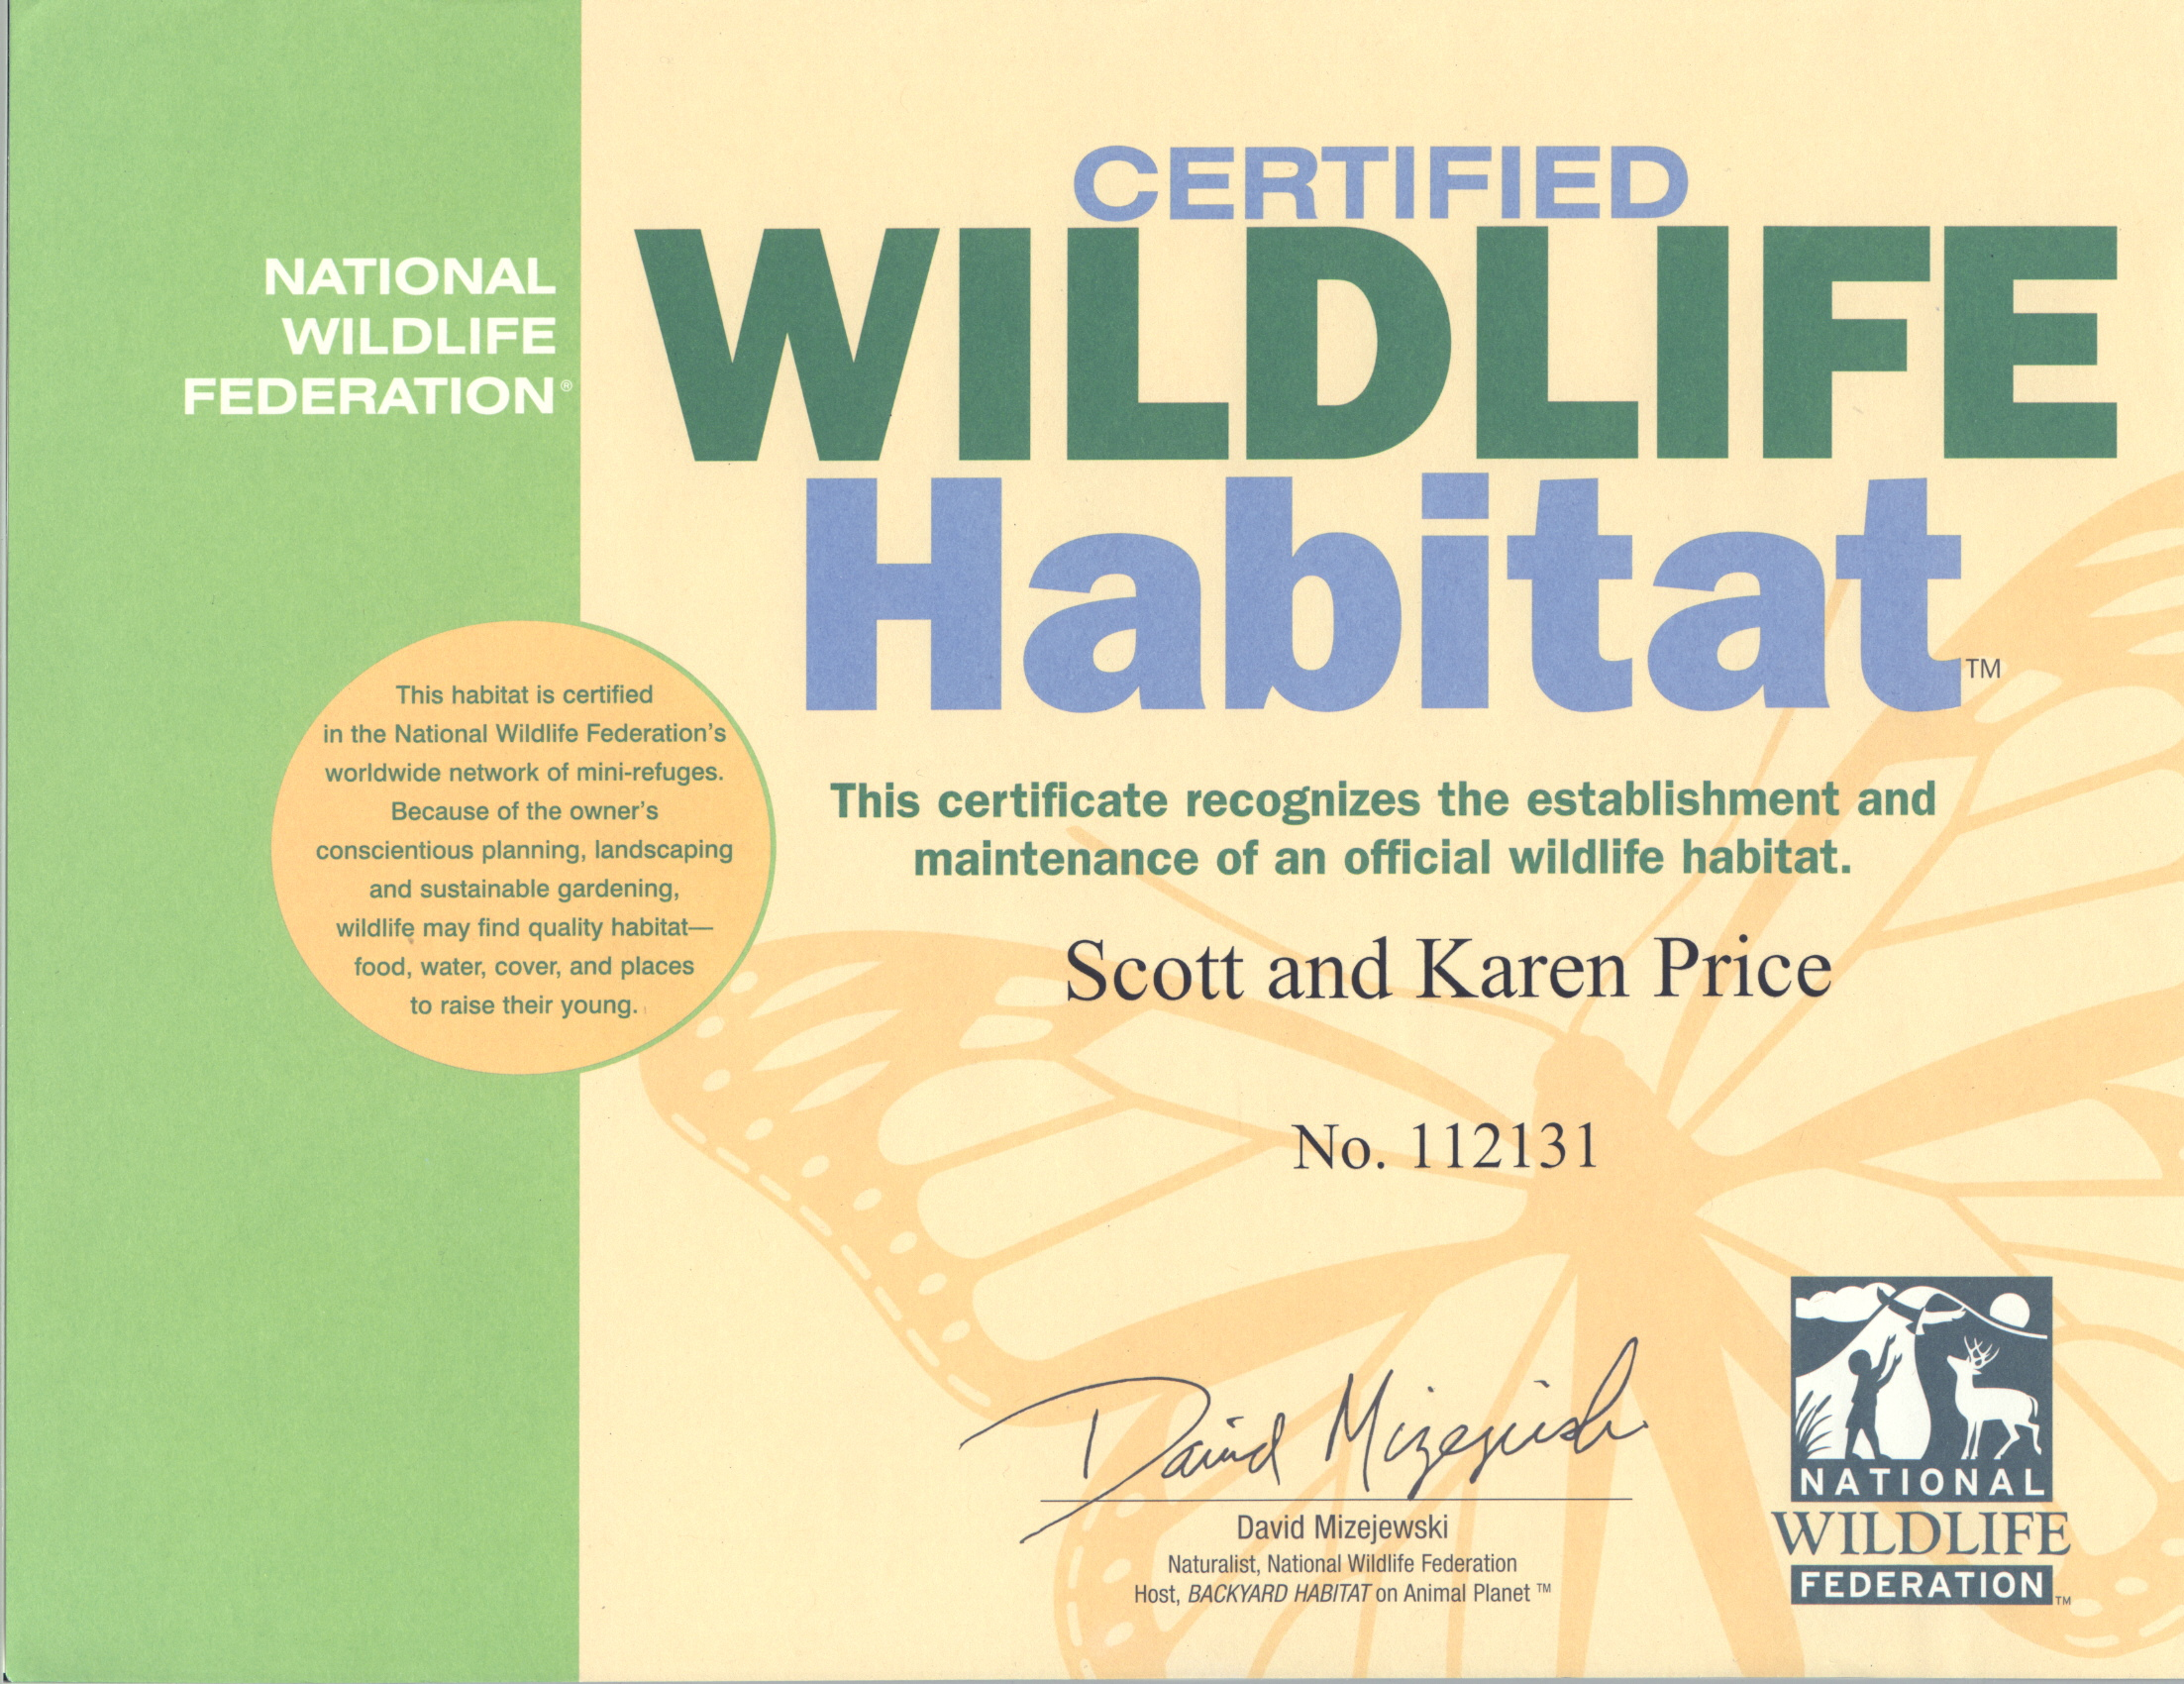 National Wildlife Federation Certified Wildlife Habitat certificate